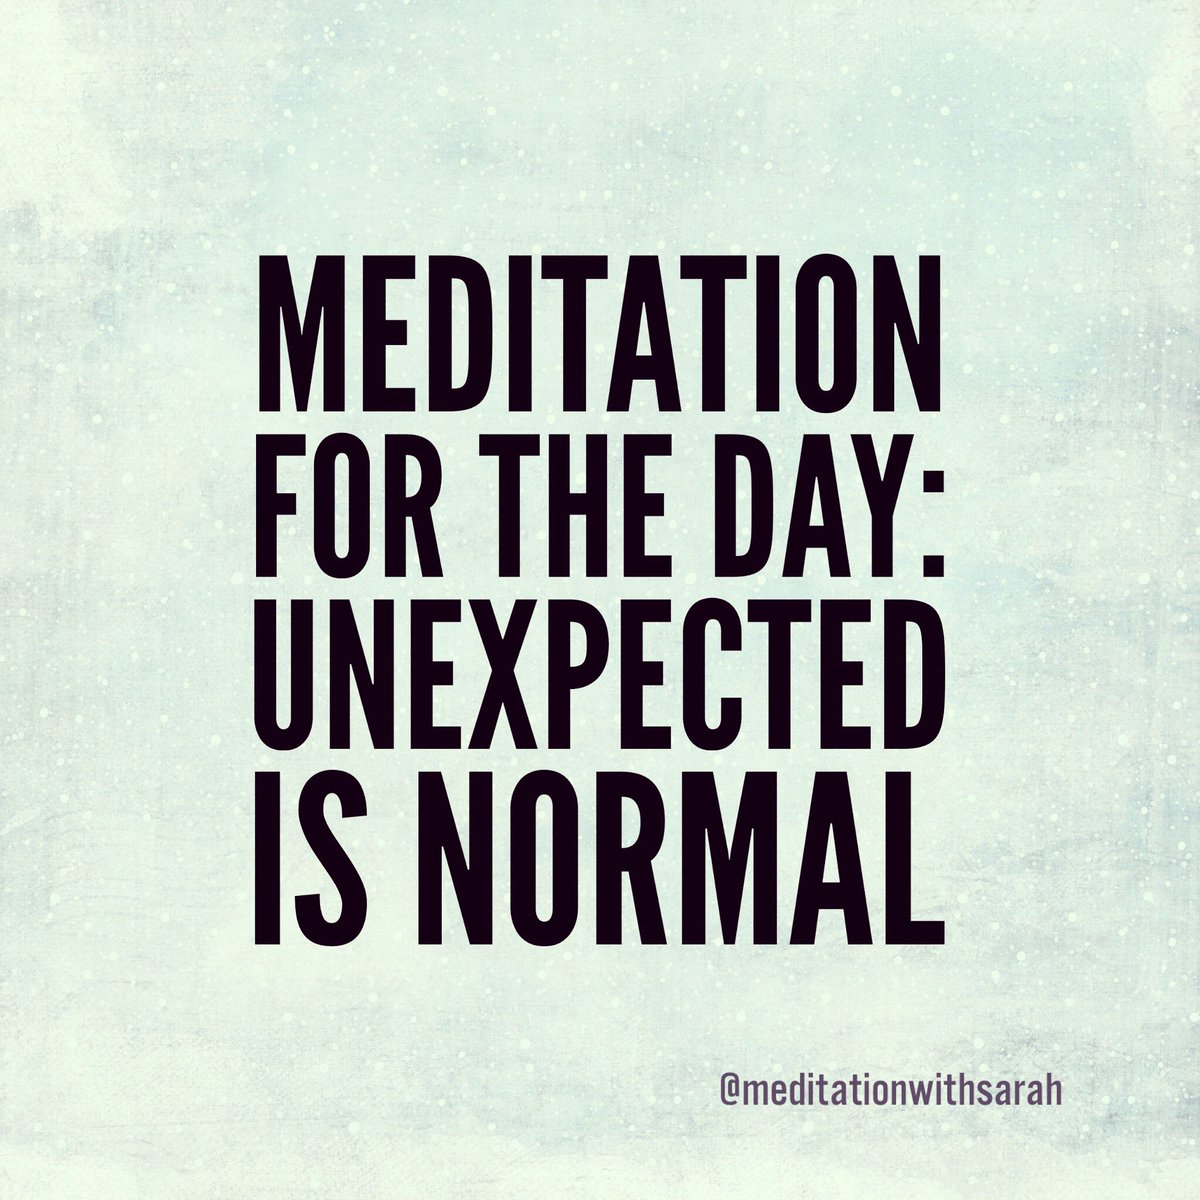 # Meditation for the day: unexpected is normal #yoga #unexpected #manifesting #lawofattraction<br>http://pic.twitter.com/6hvzOZFw5w